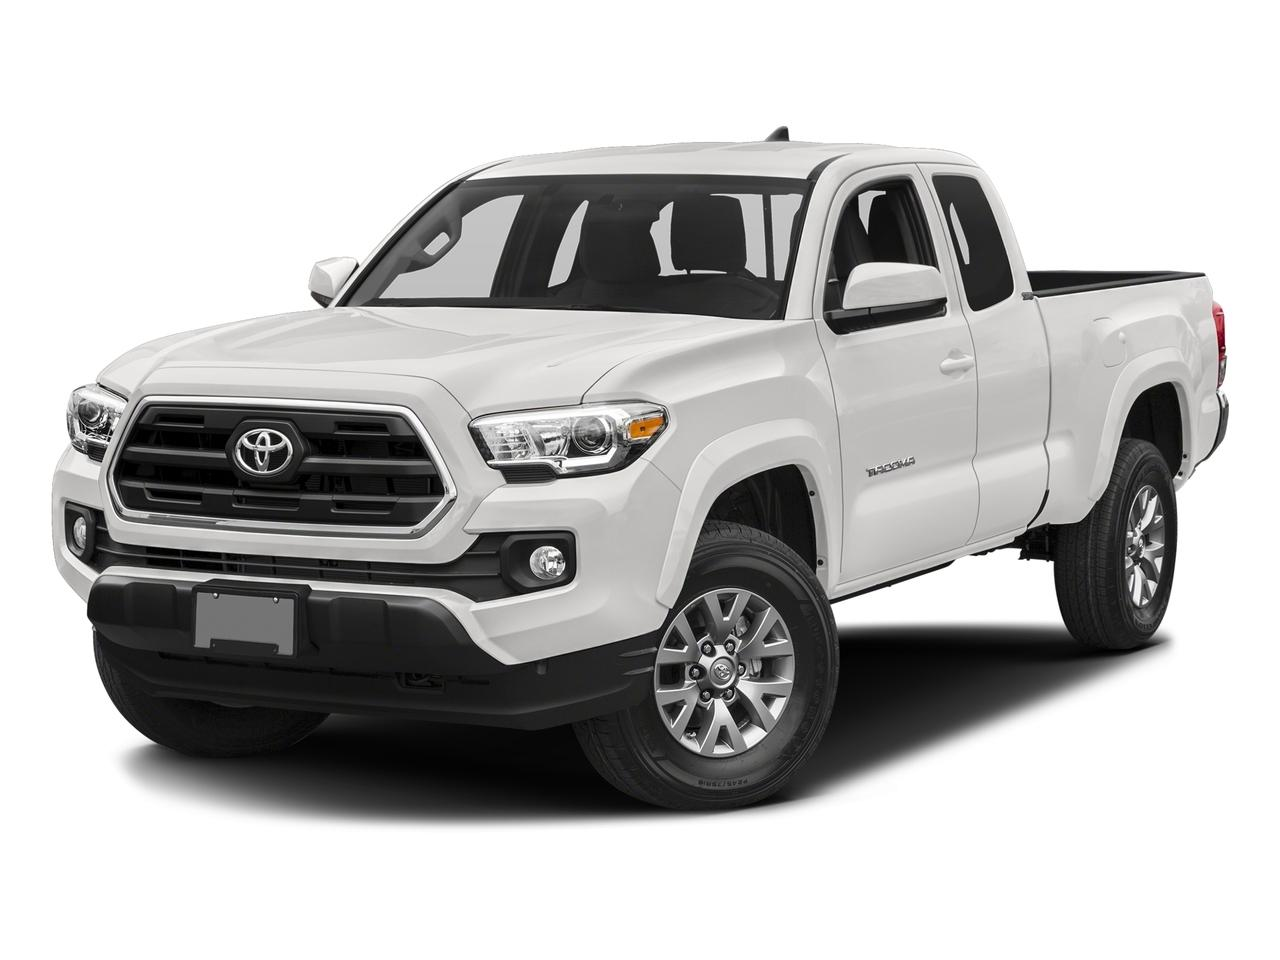 2016 Toyota Tacoma Vehicle Photo in Joliet, IL 60435